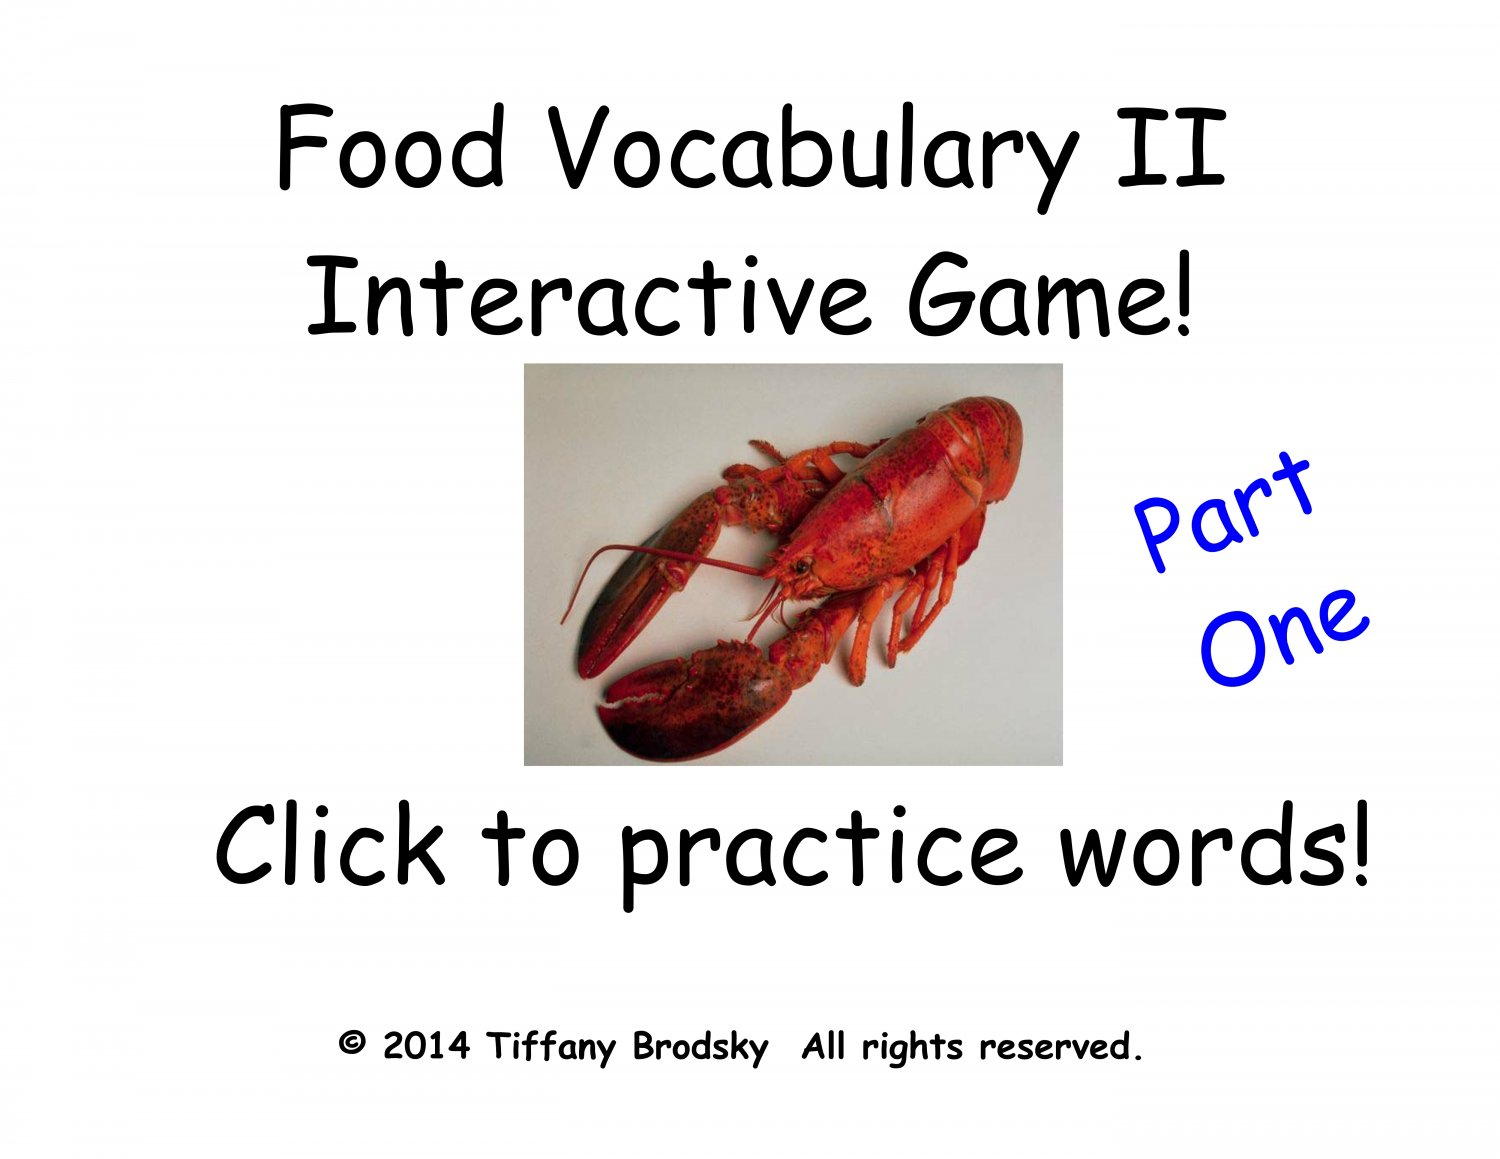 Food Vocabulary II Interactive Game, Part One is Superb for